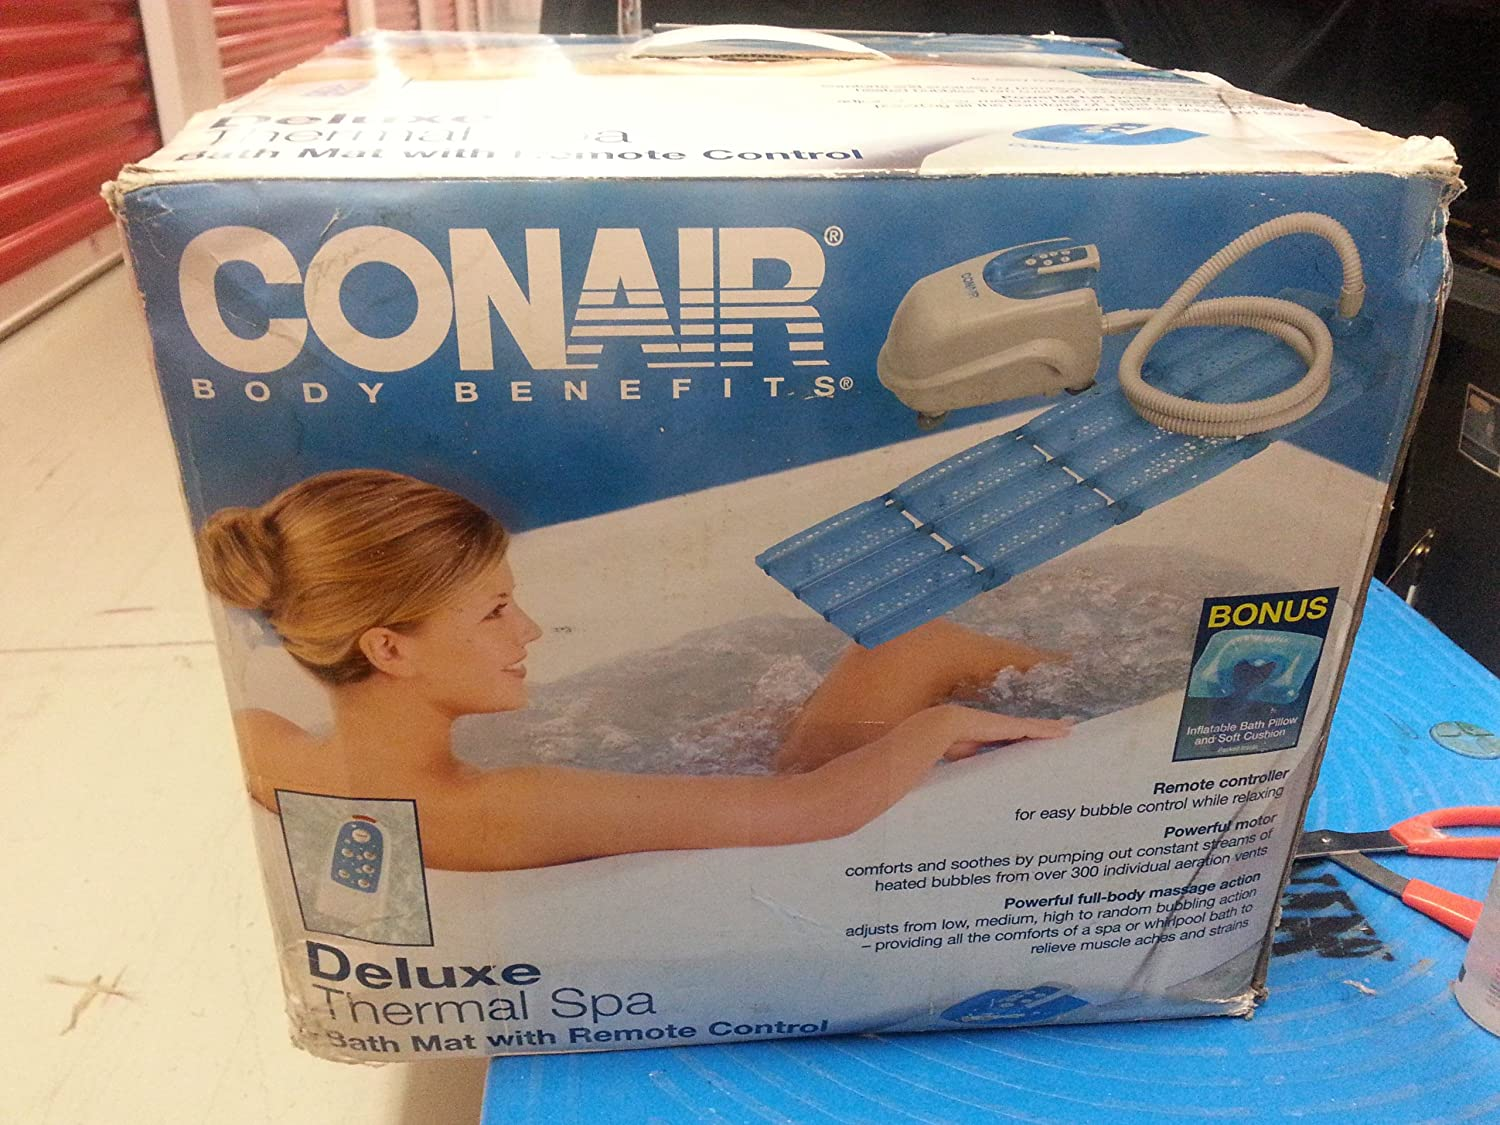 Amazon.com: Conair Body Benefits Deluxe Therma Spa Bath Mat: Home ...